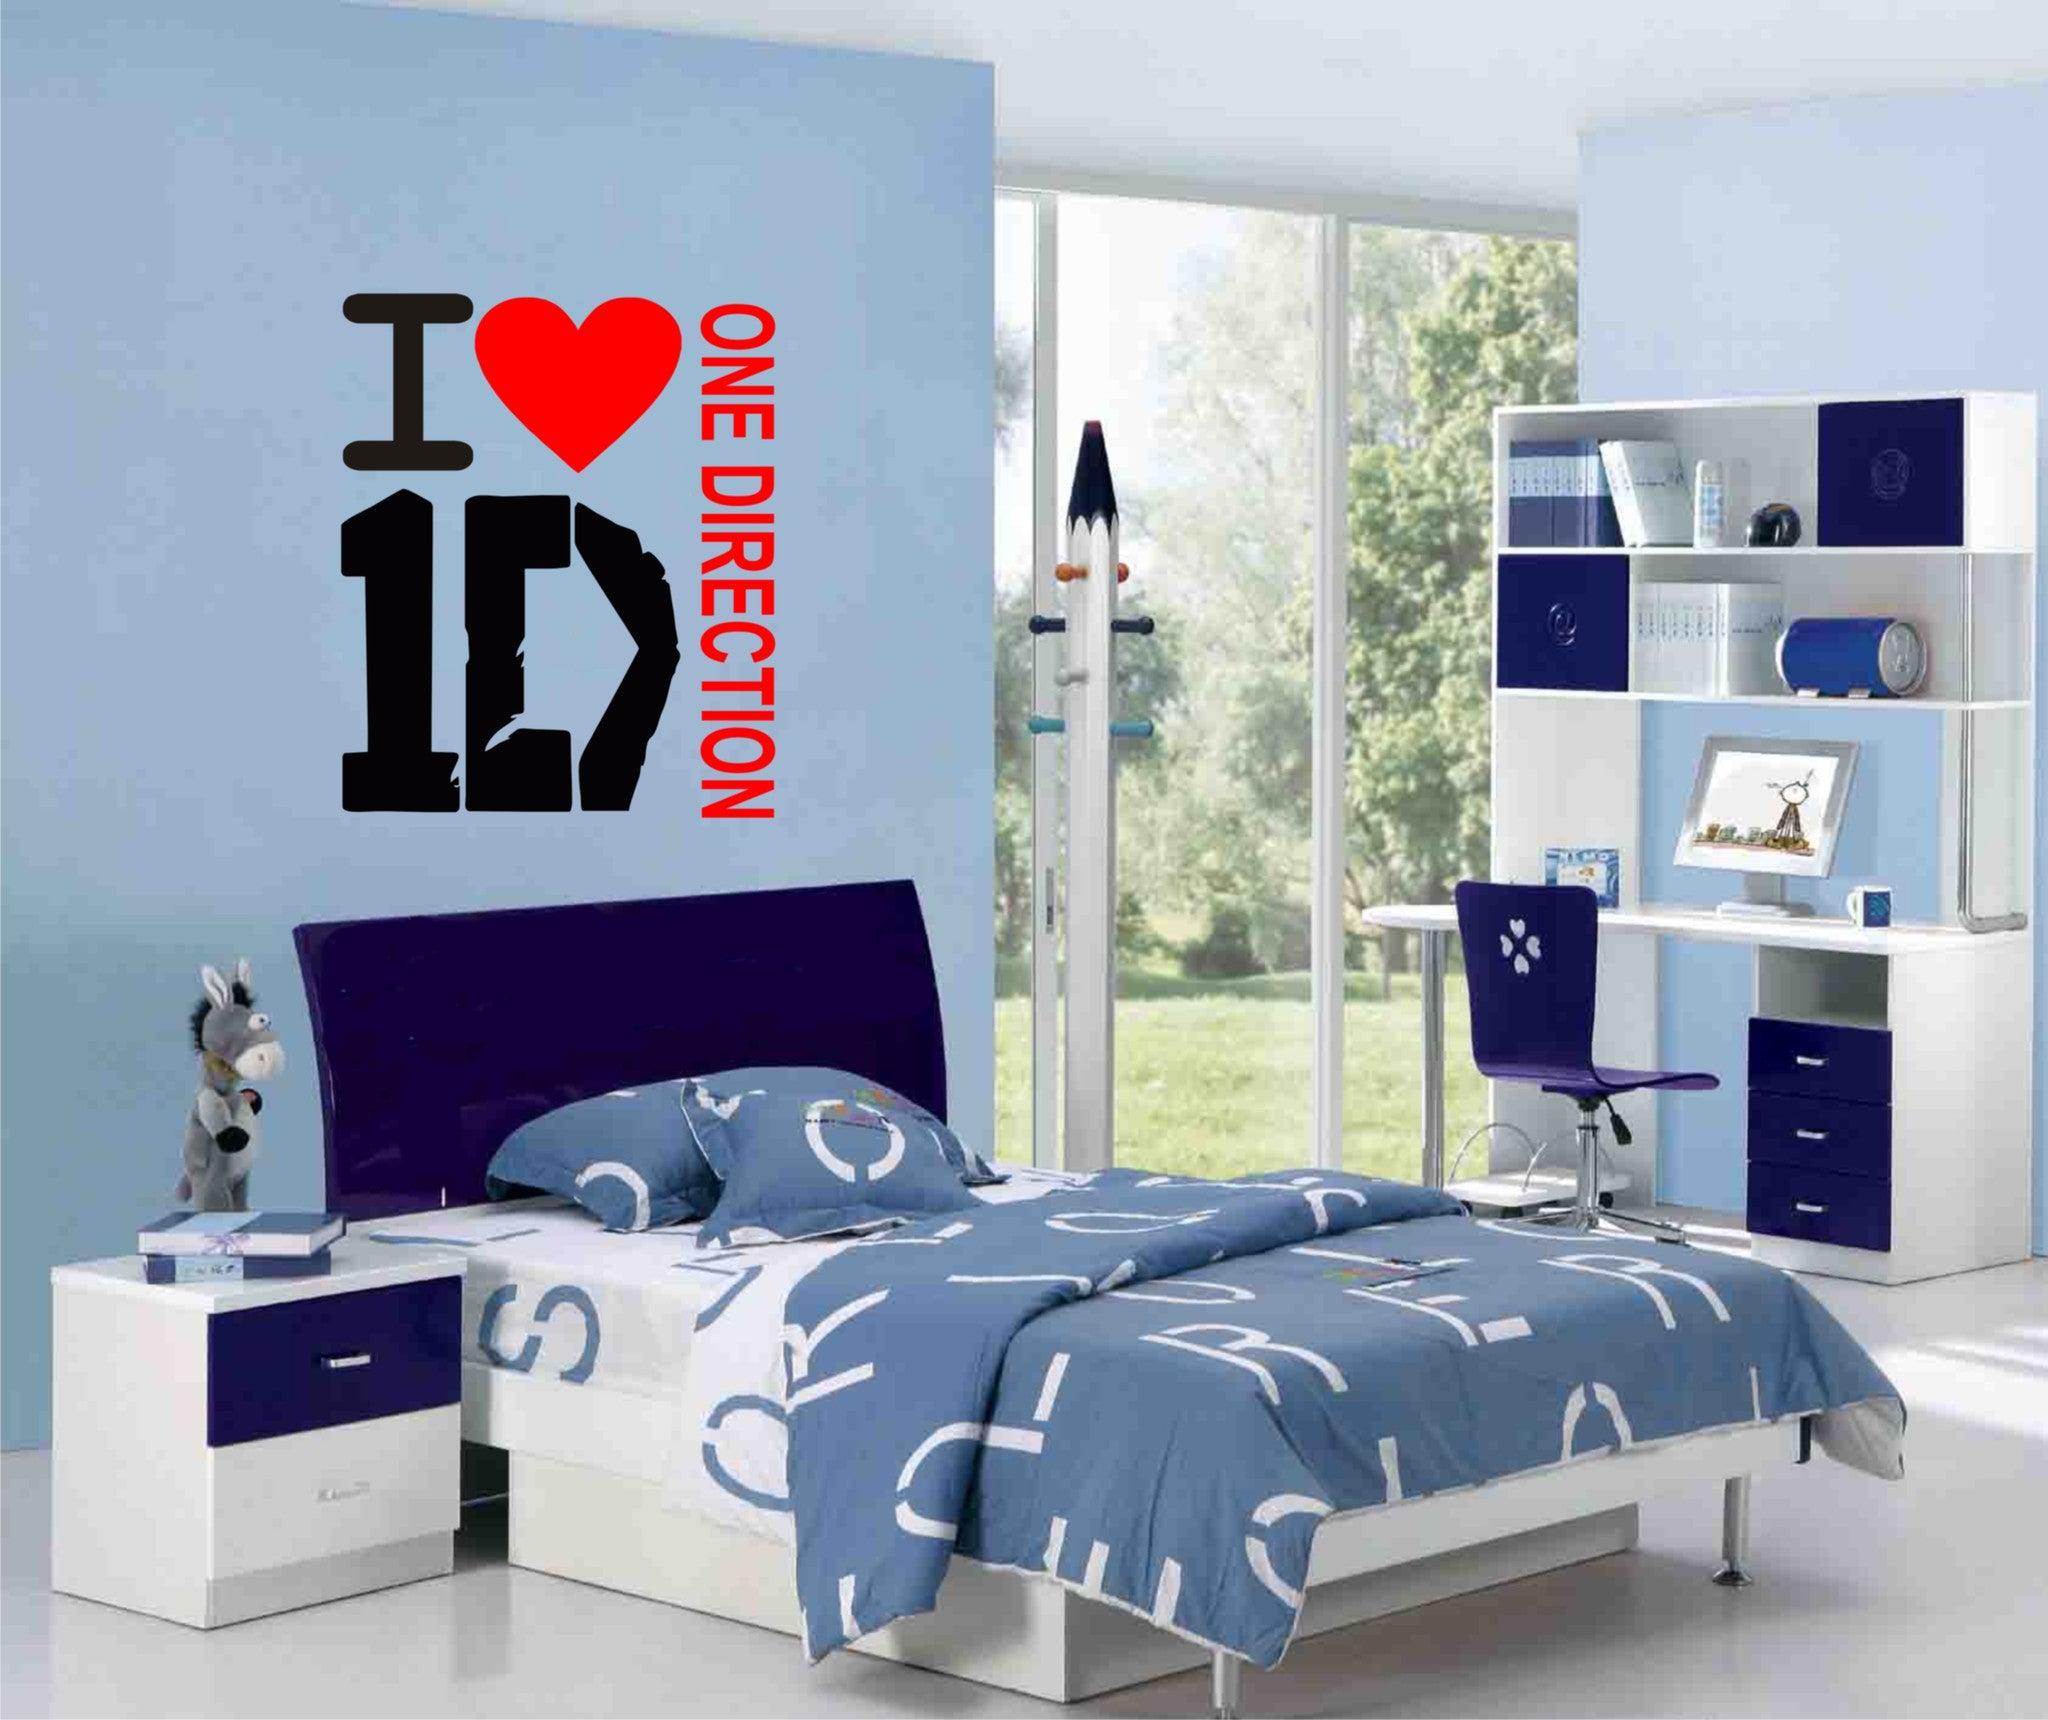 One Direction Wall Art Sticker Great Decal For Any Room Wall Art Shop